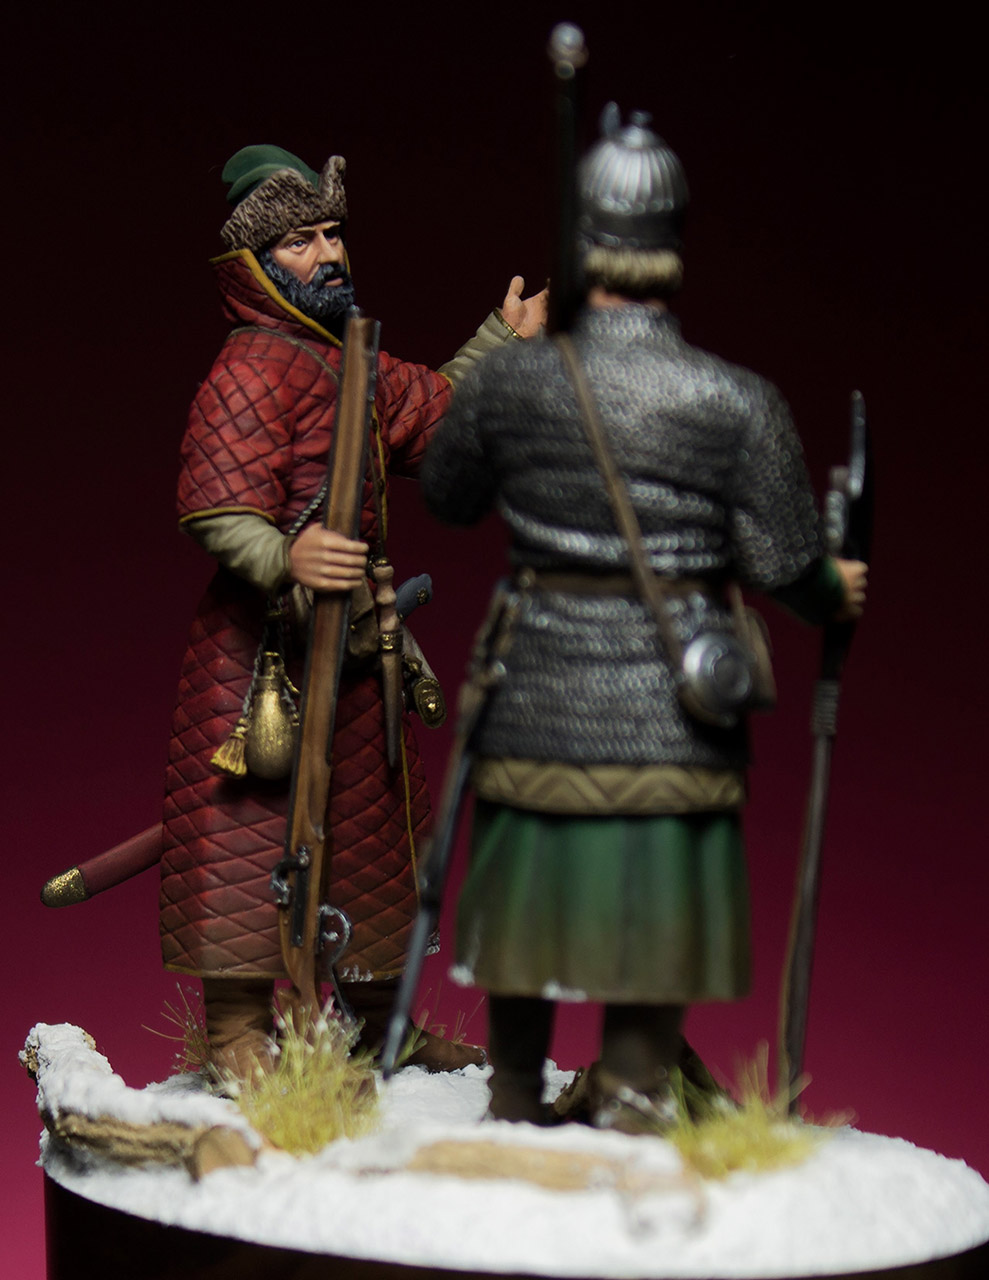 Figures: Russian musketeers, photo #4